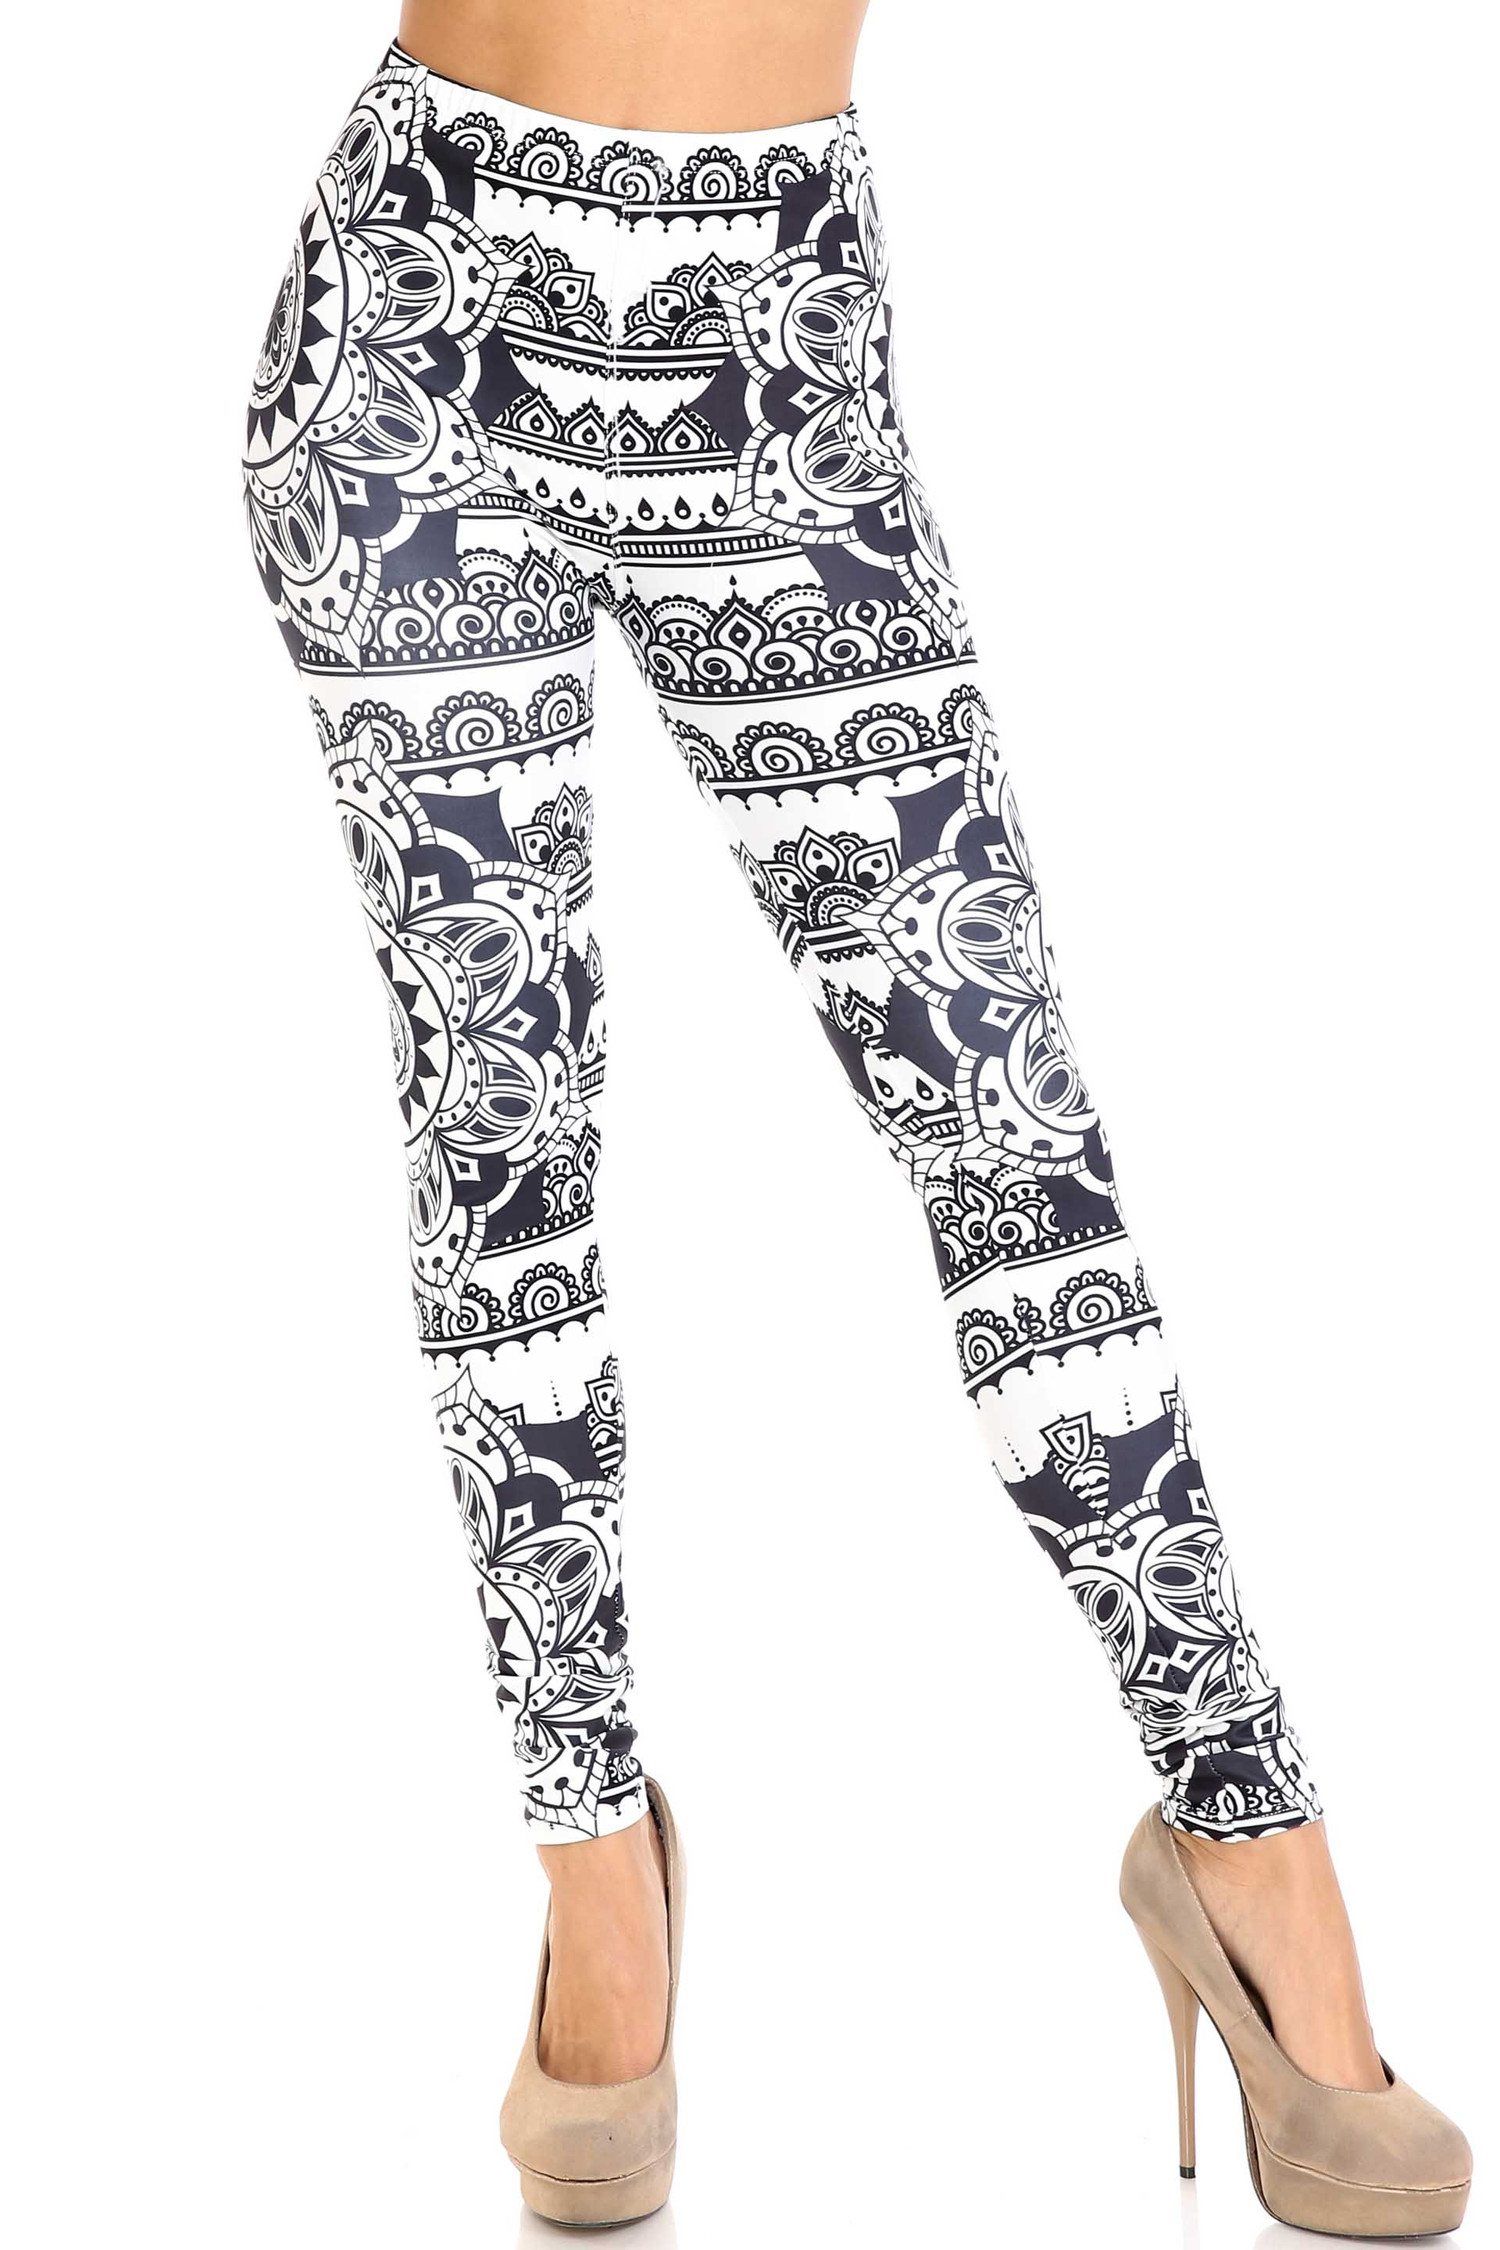 Creamy Soft Monochrome Mandala Extra Plus Size Leggings - 3X-5X - By USA Fashion™